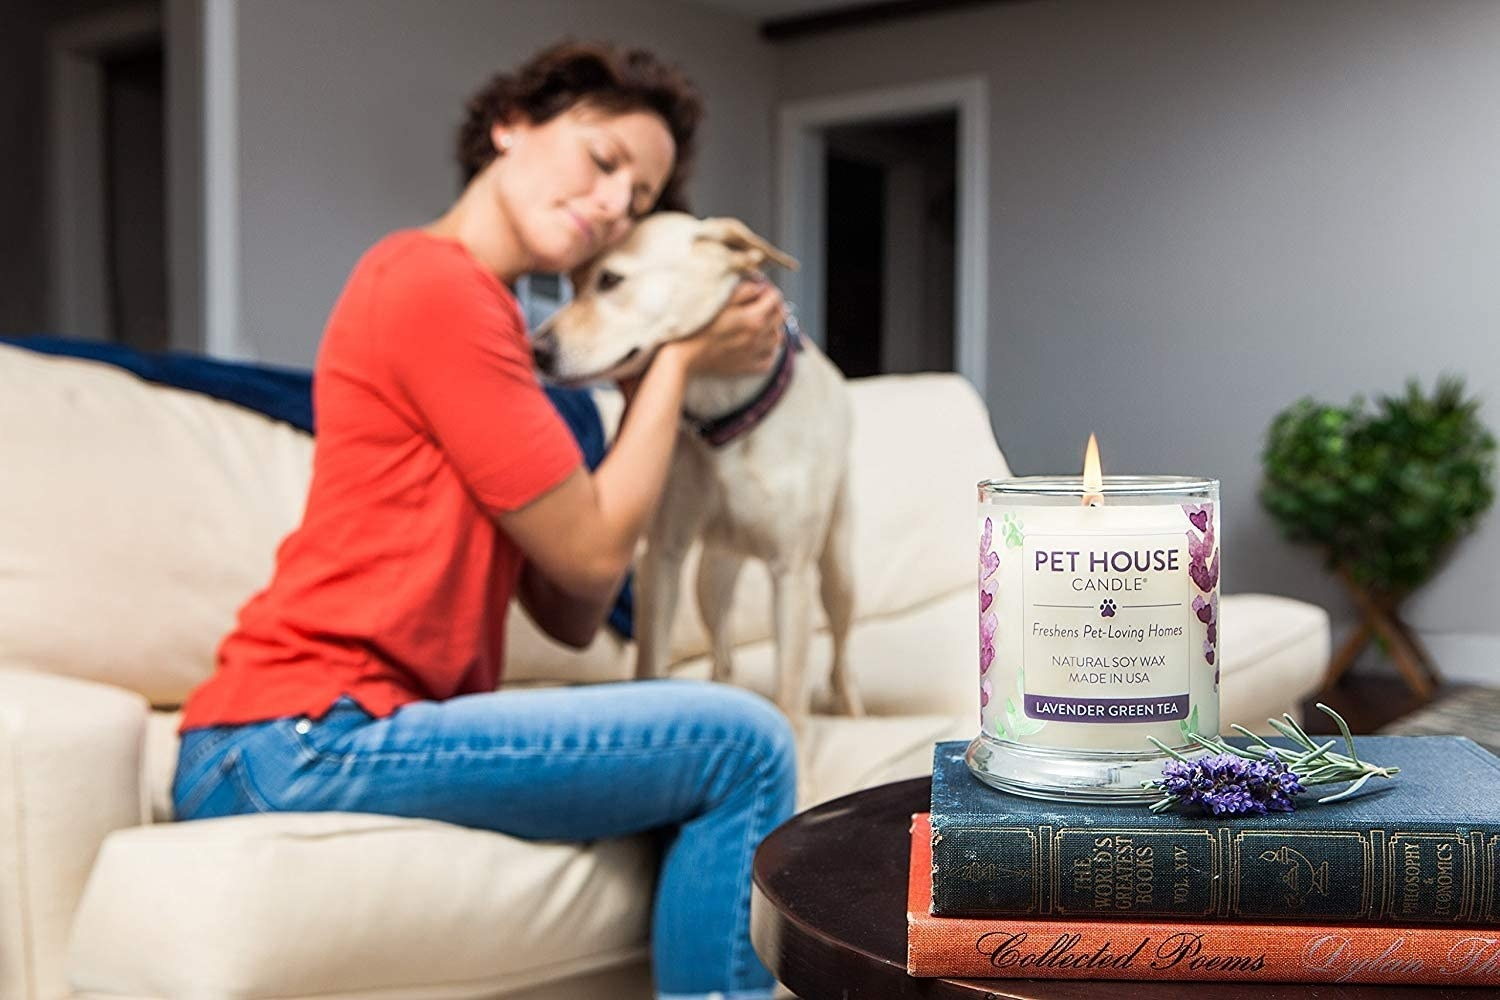 pet house candle lit in the foreground with a dog and a human cuddling in the background